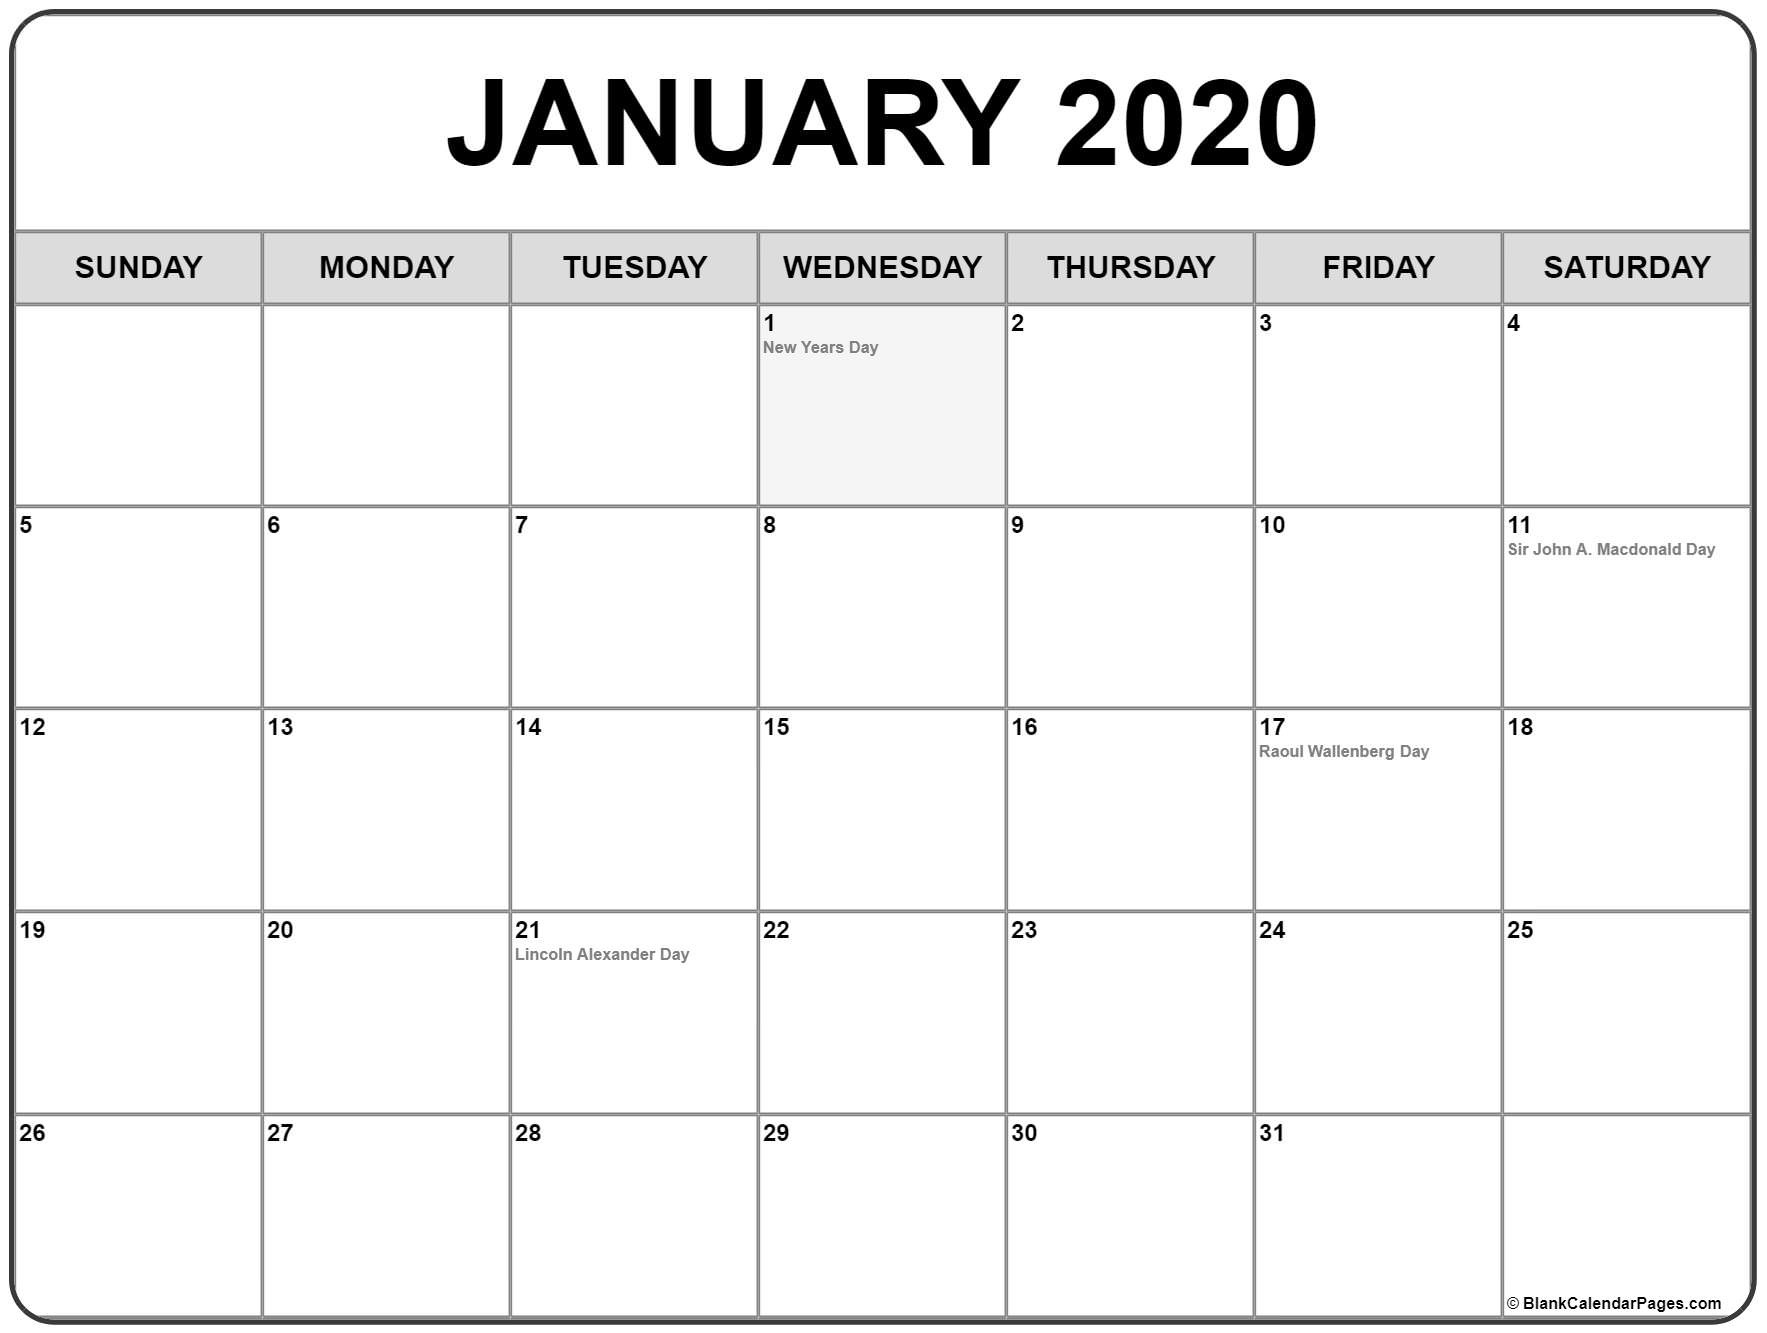 Collection Of January 2020 Calendars With Holidays-January 2020 Canadian Calendar